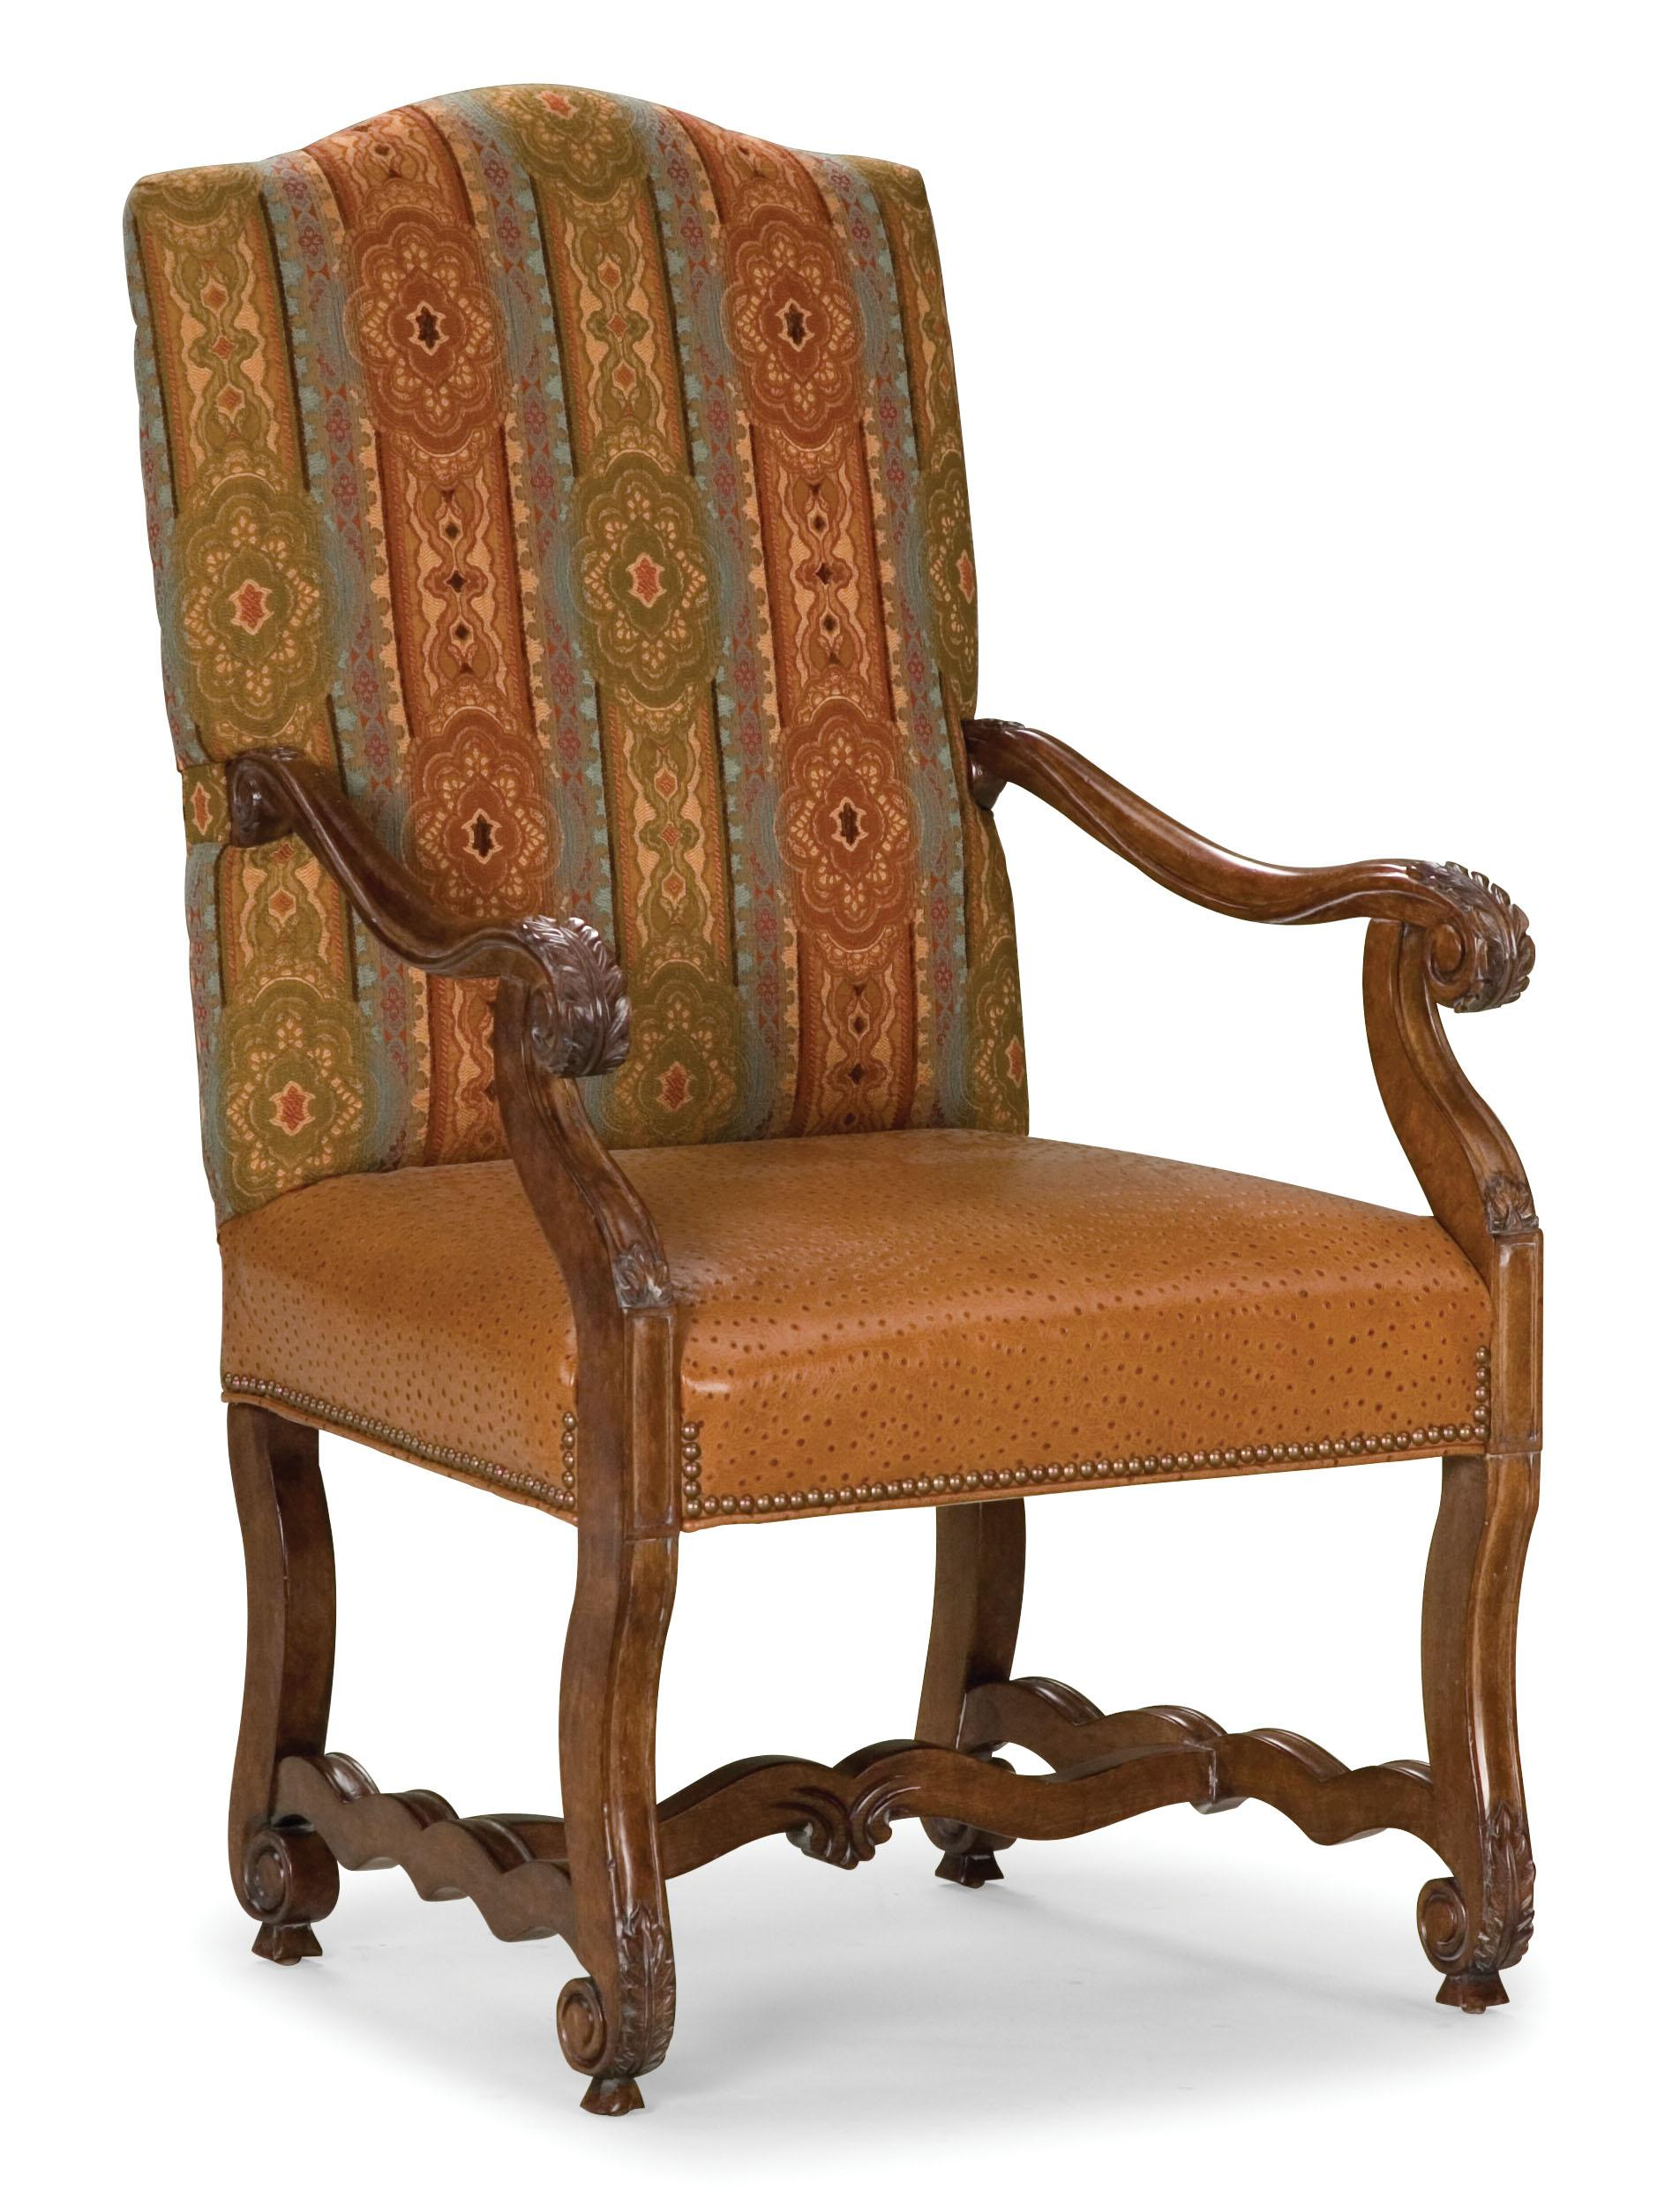 Fairfield Chairs Exposed Wood Accent Chair - Item Number: 5409-04